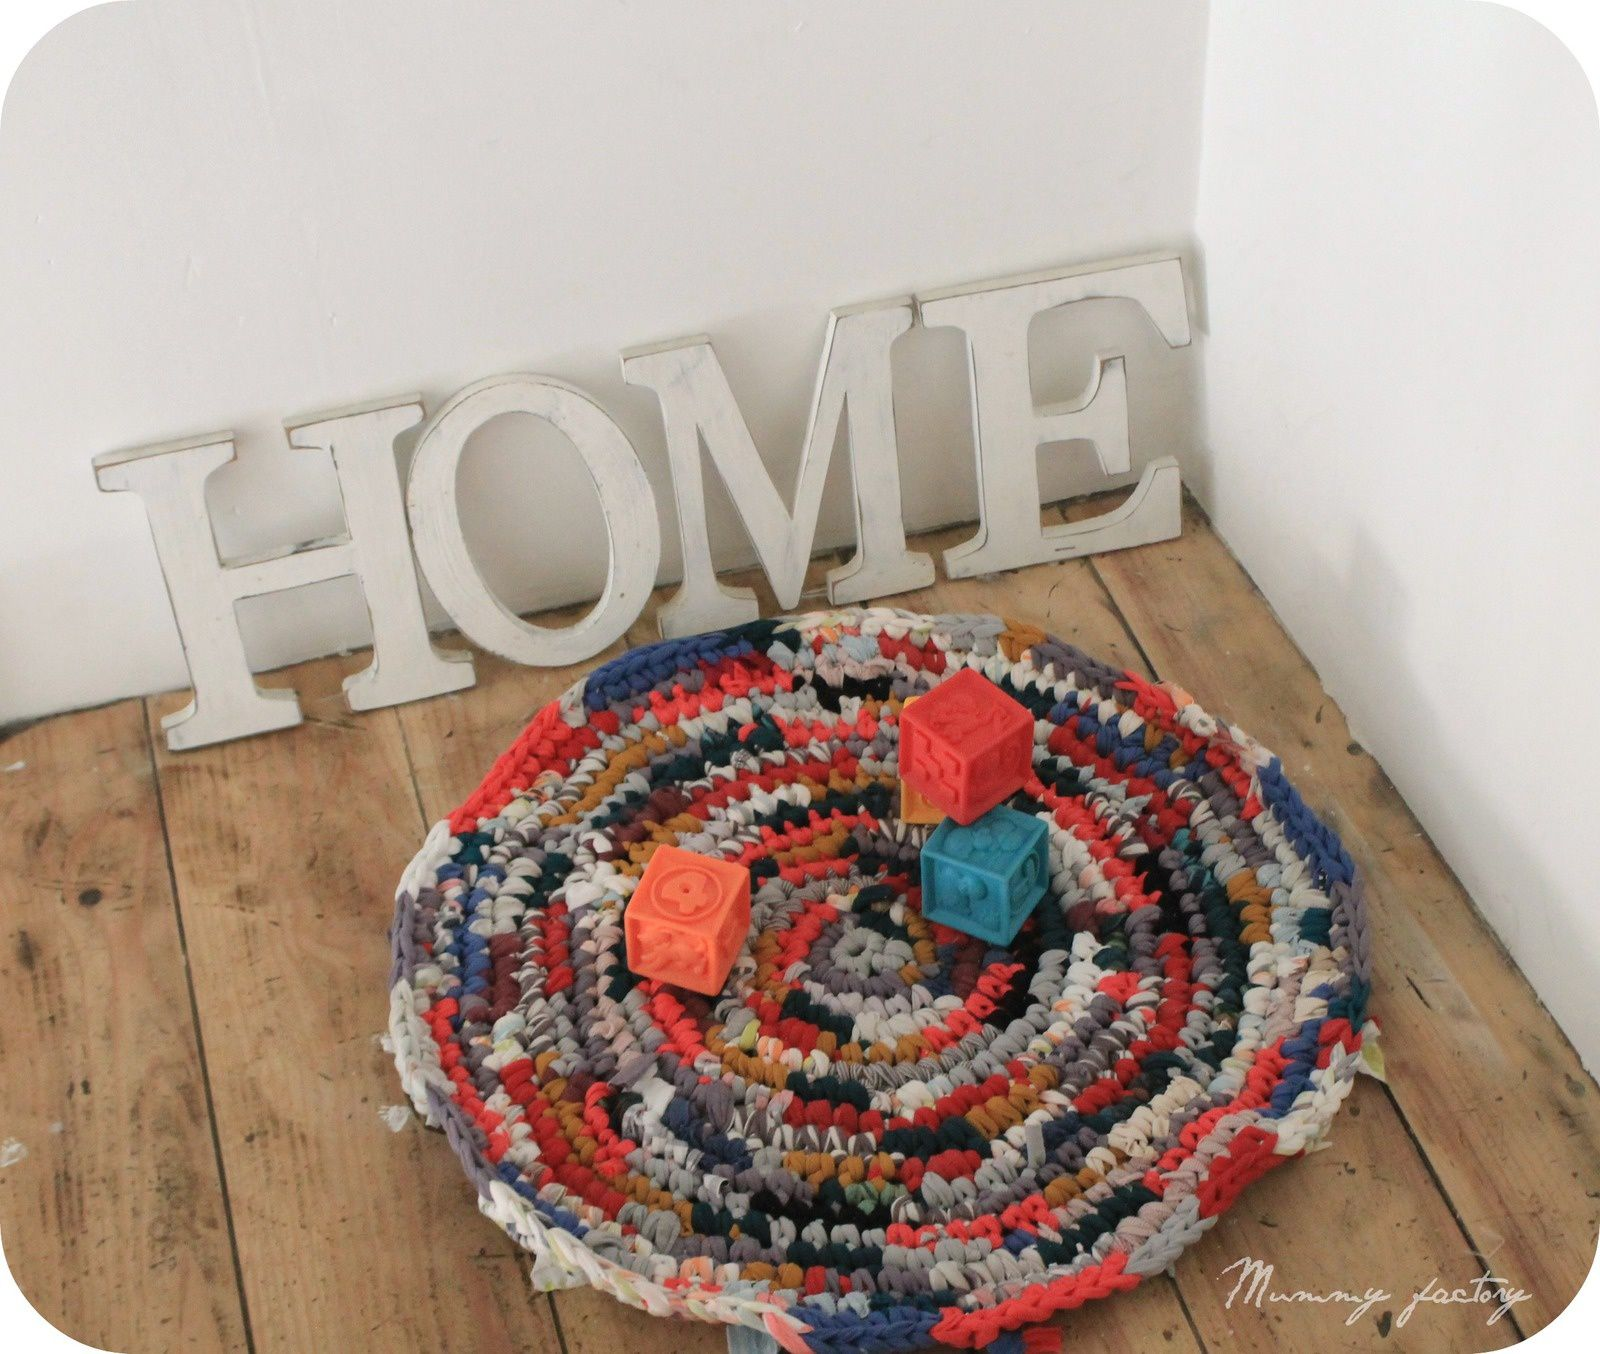 # 5 Upcycled Carpet ...